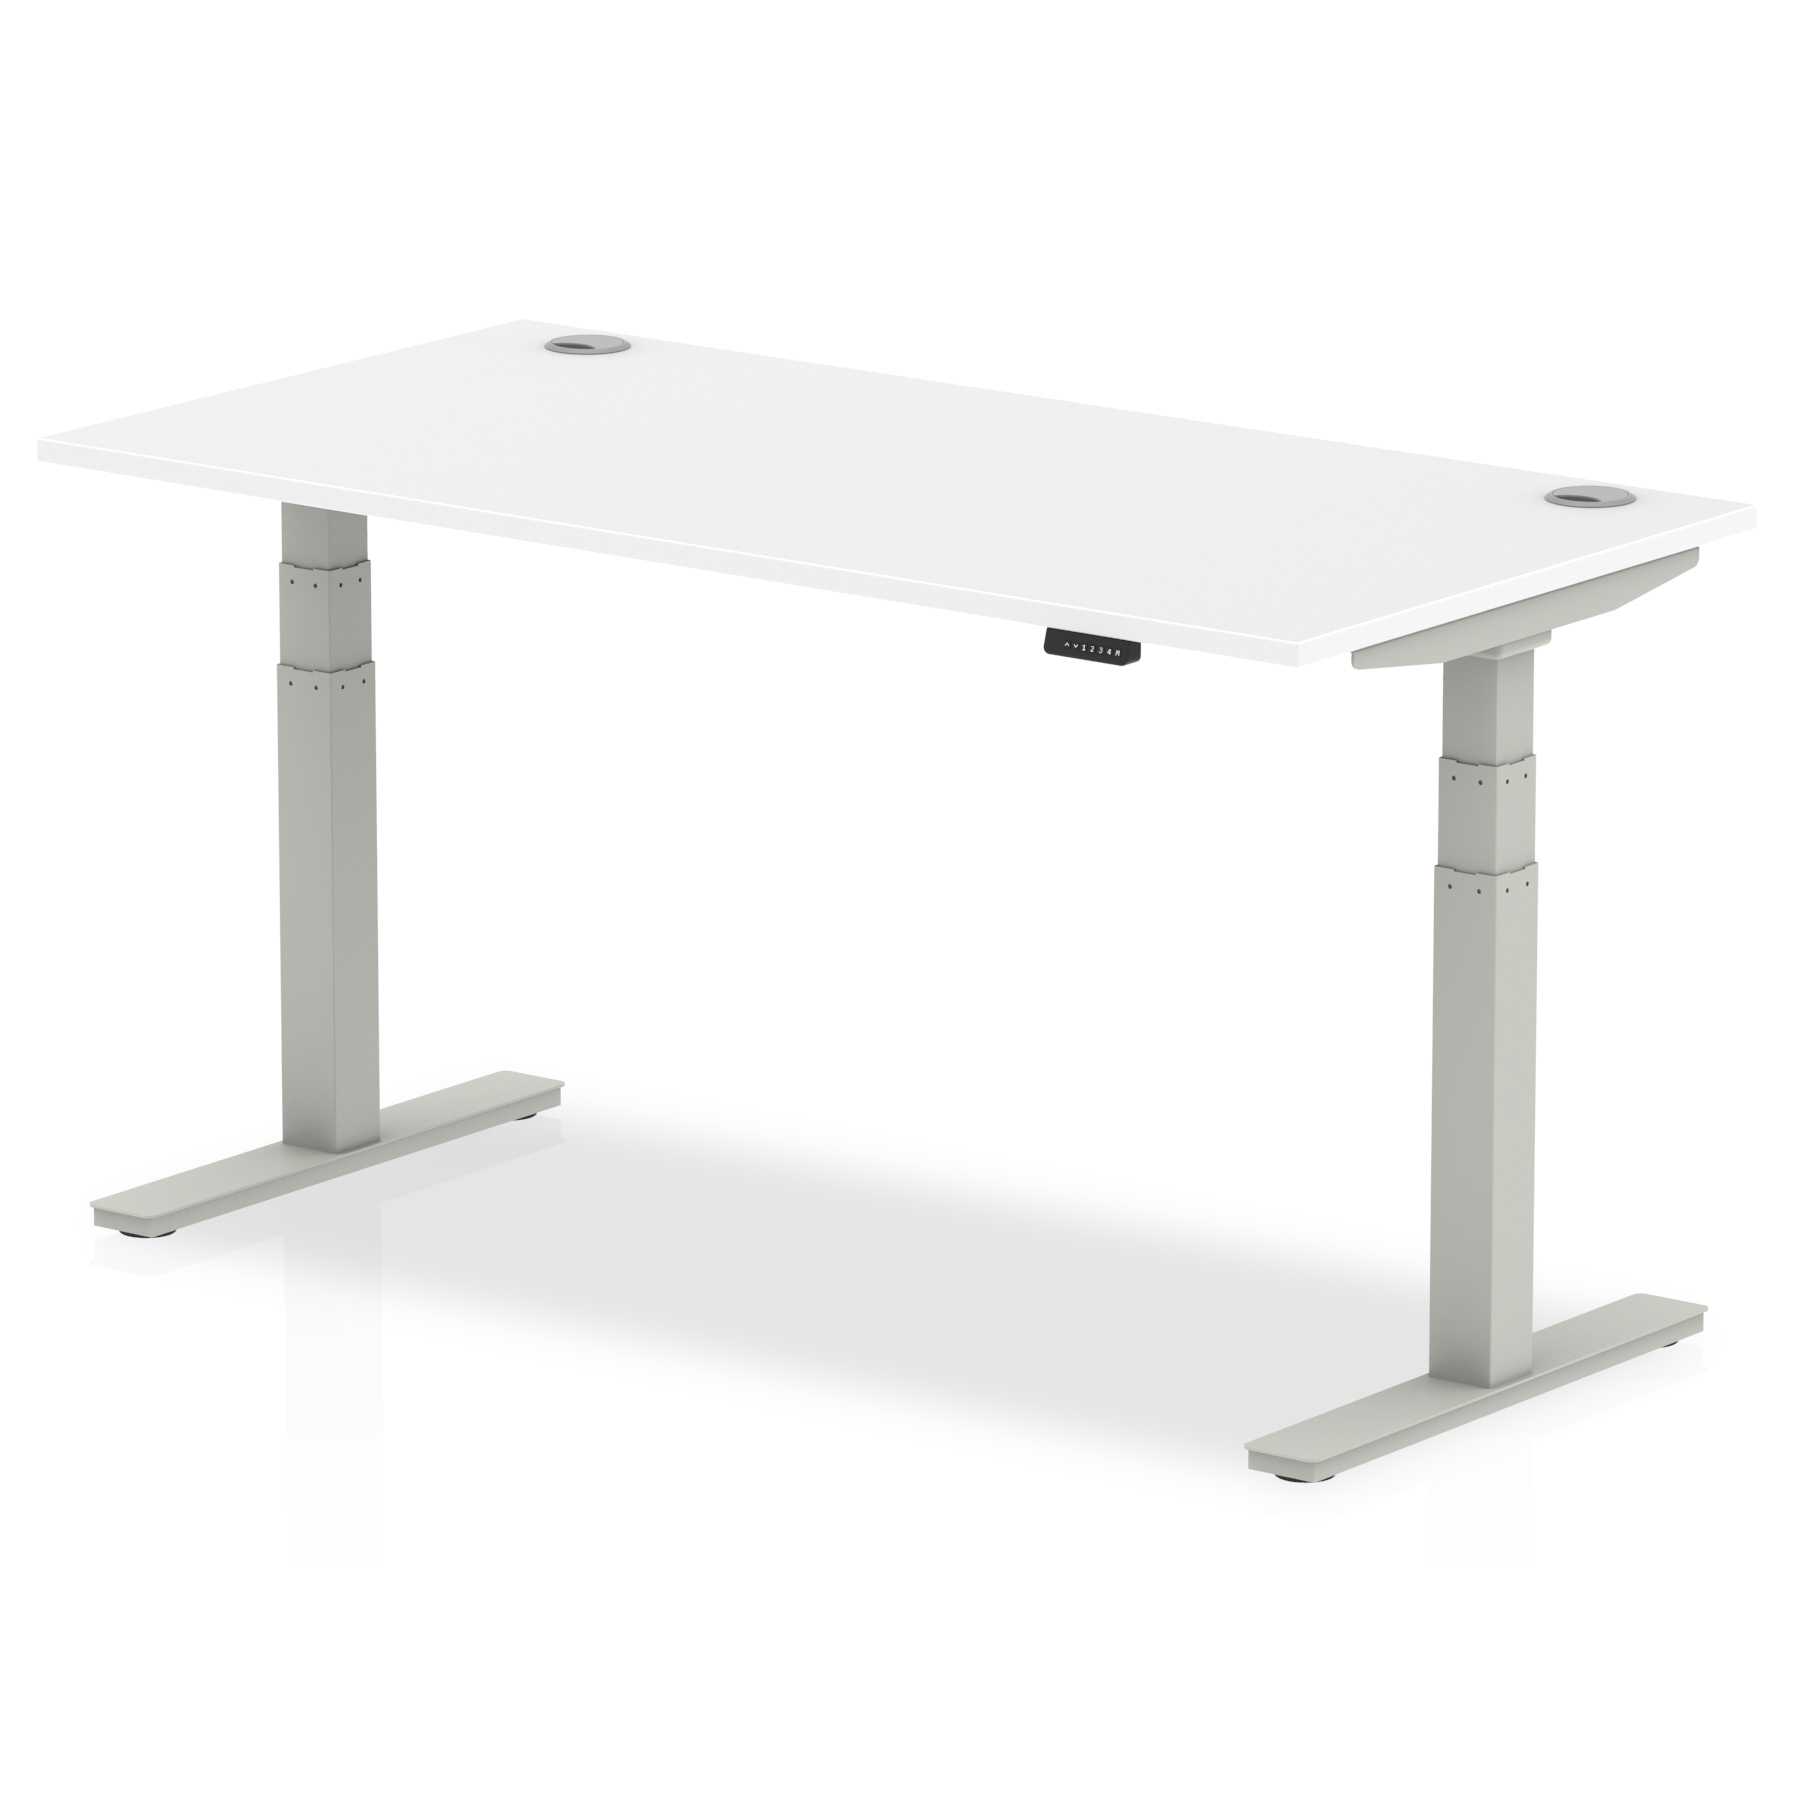 Trexus Sit Stand Desk With Cable Ports Silver Legs 1600x800mm White Ref HA01091